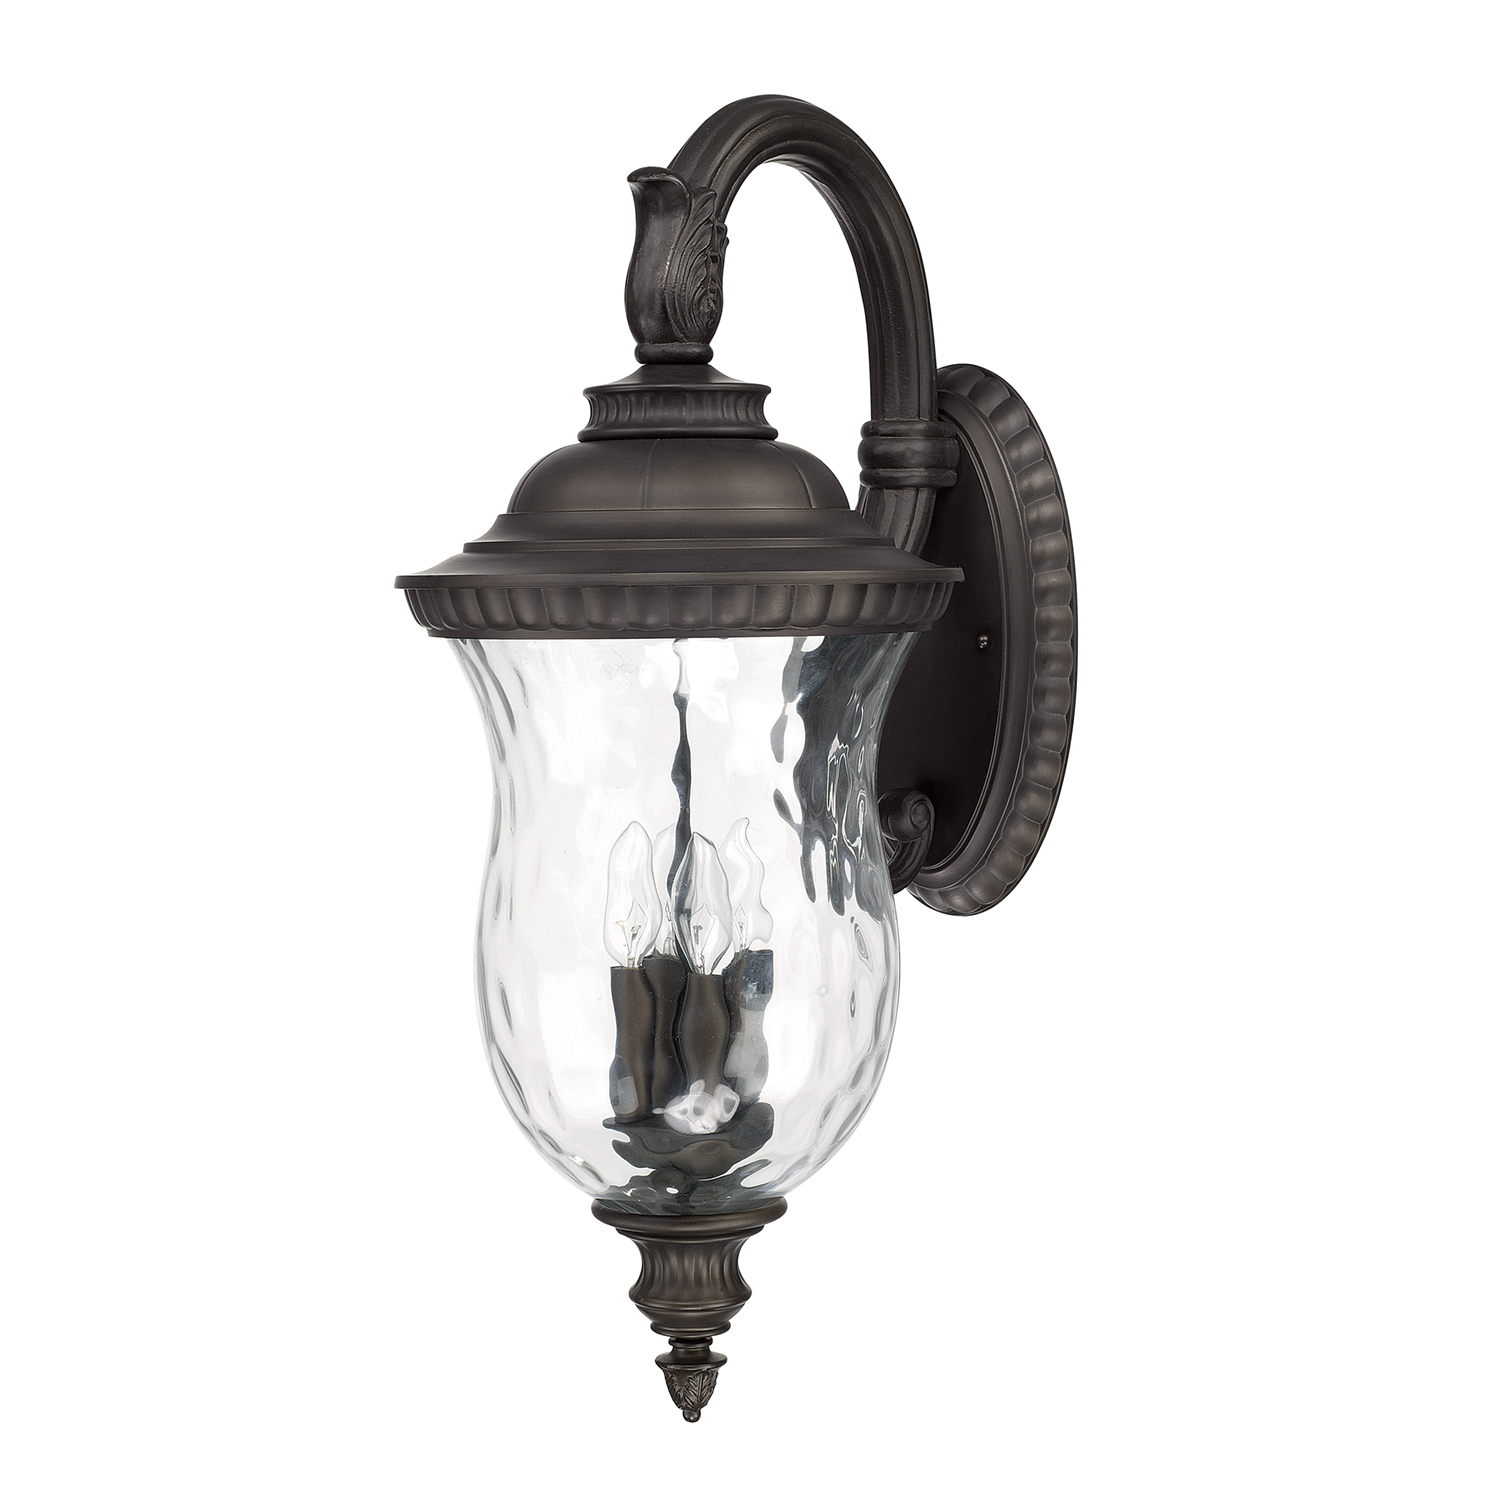 4 Light Wall Lantern Capital Lighting Fixture Company